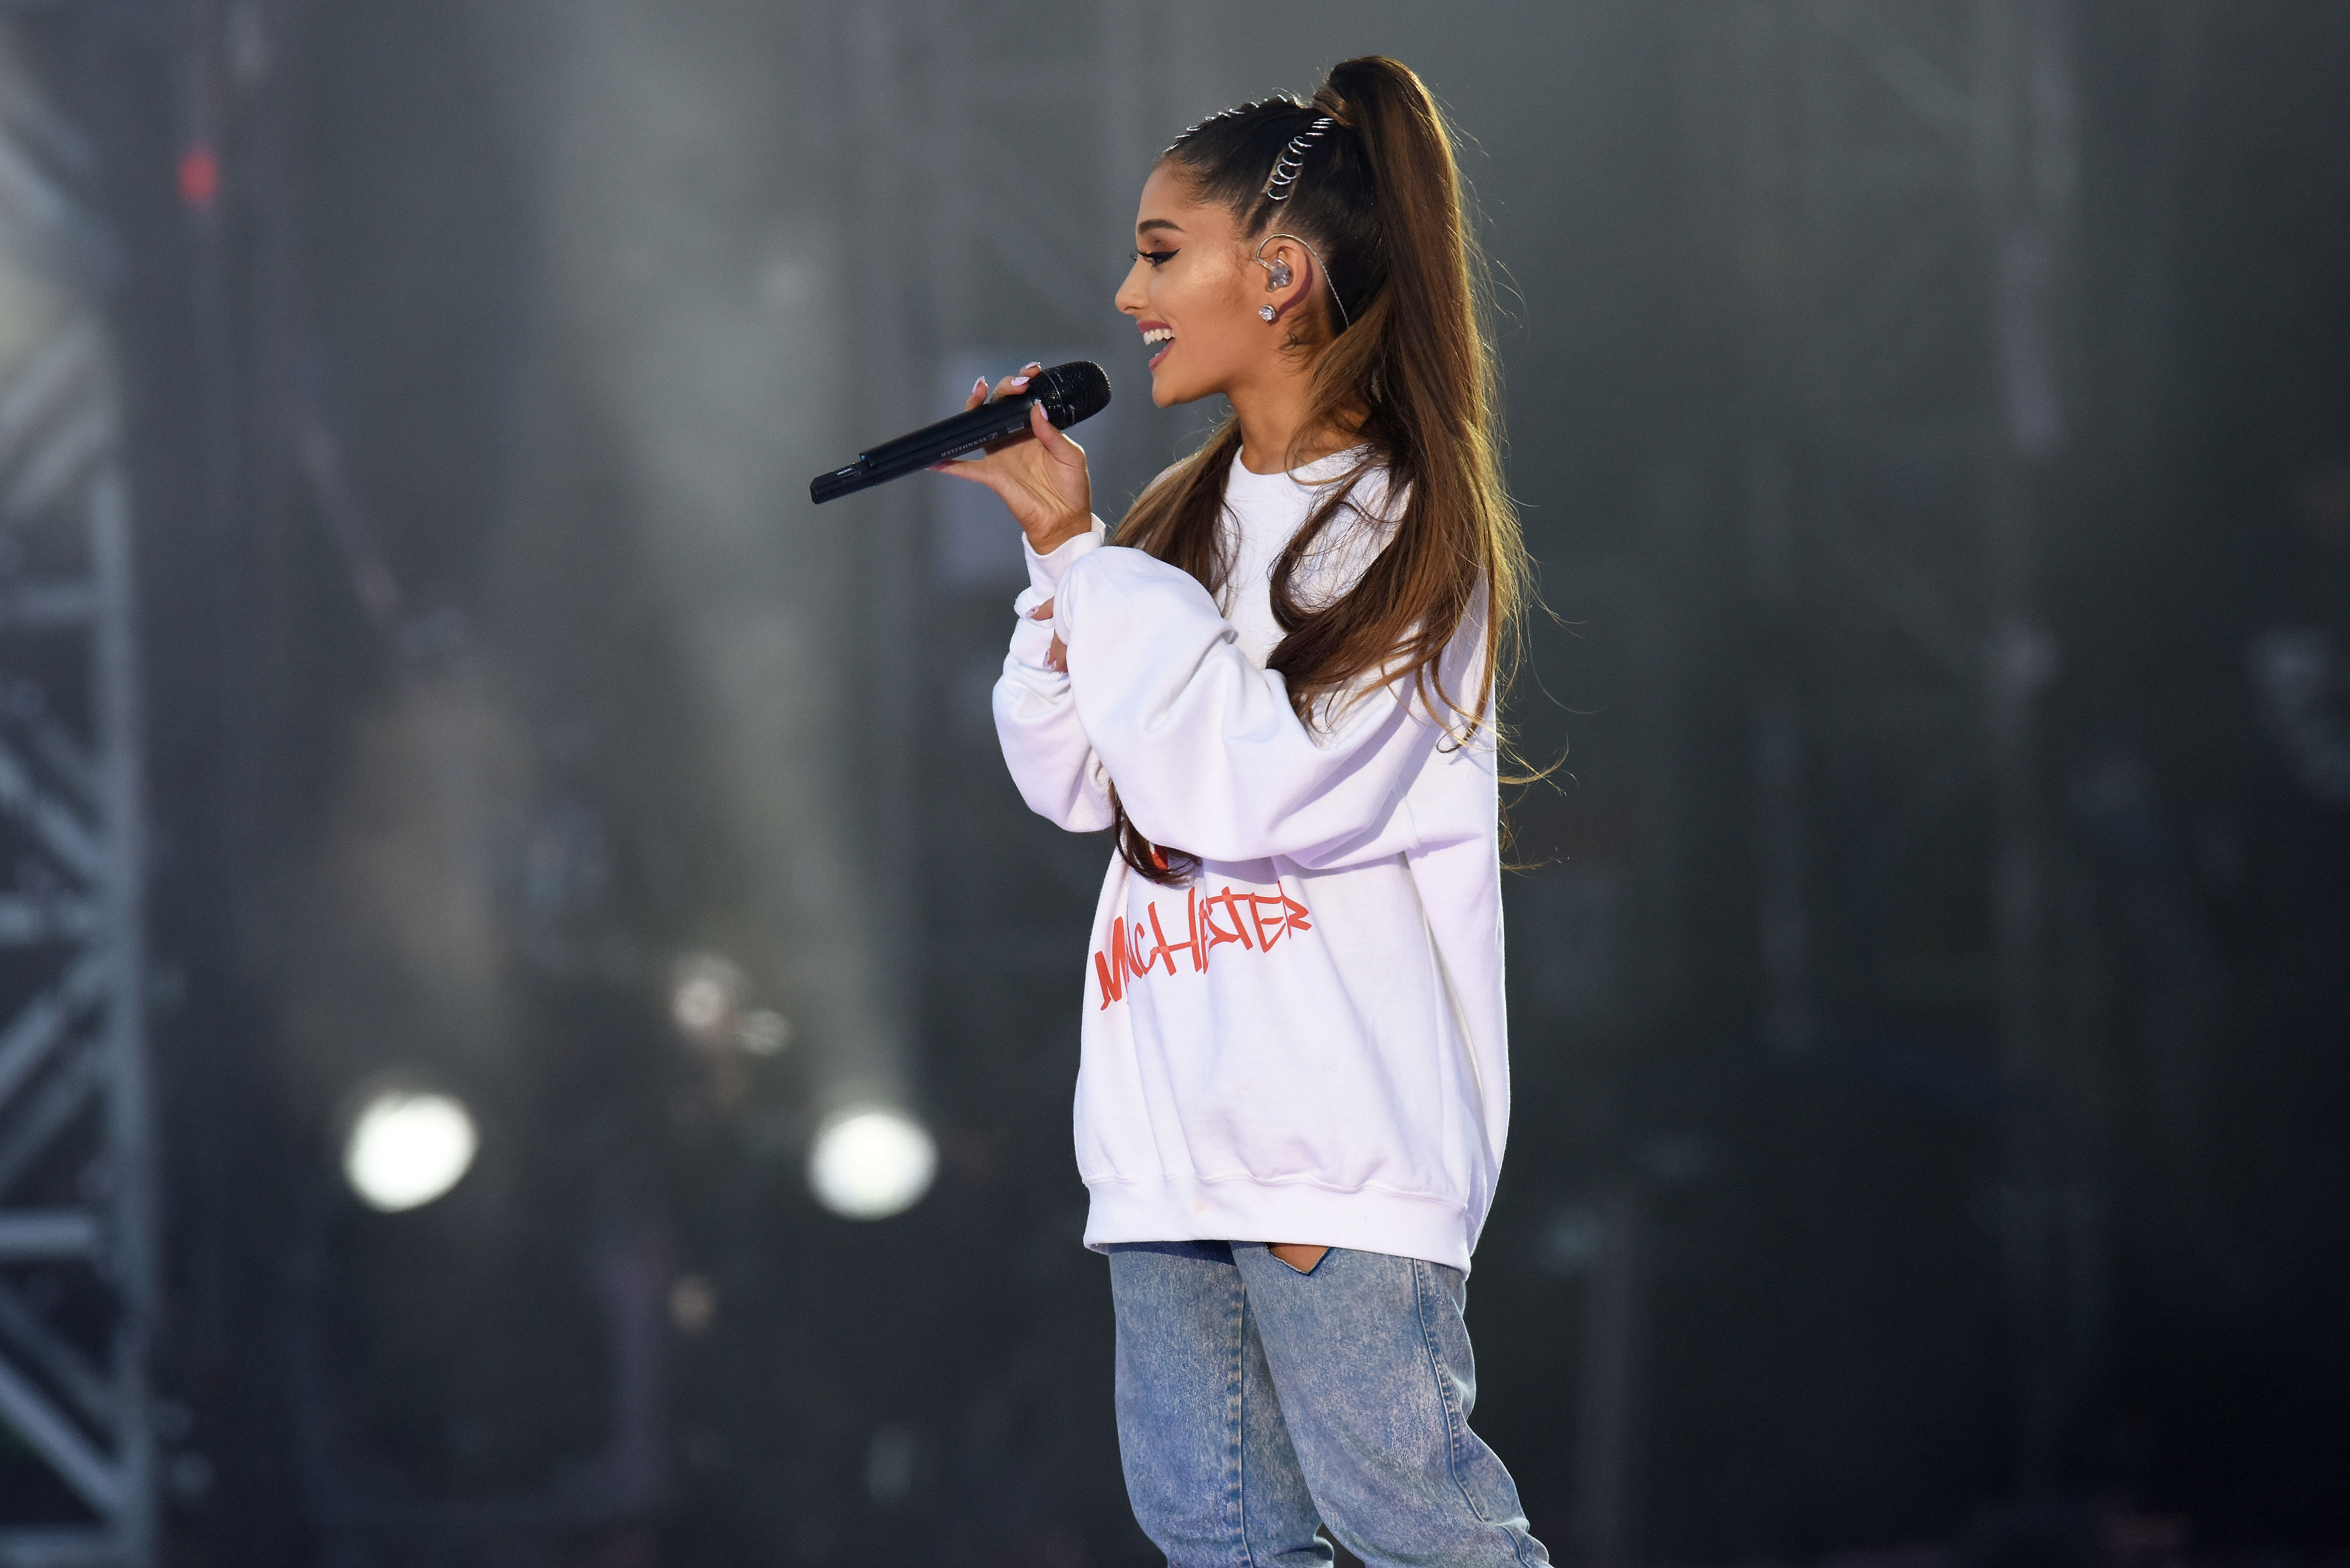 Ariana Grande makes birthday tribute to youngest victim of Manchester attack